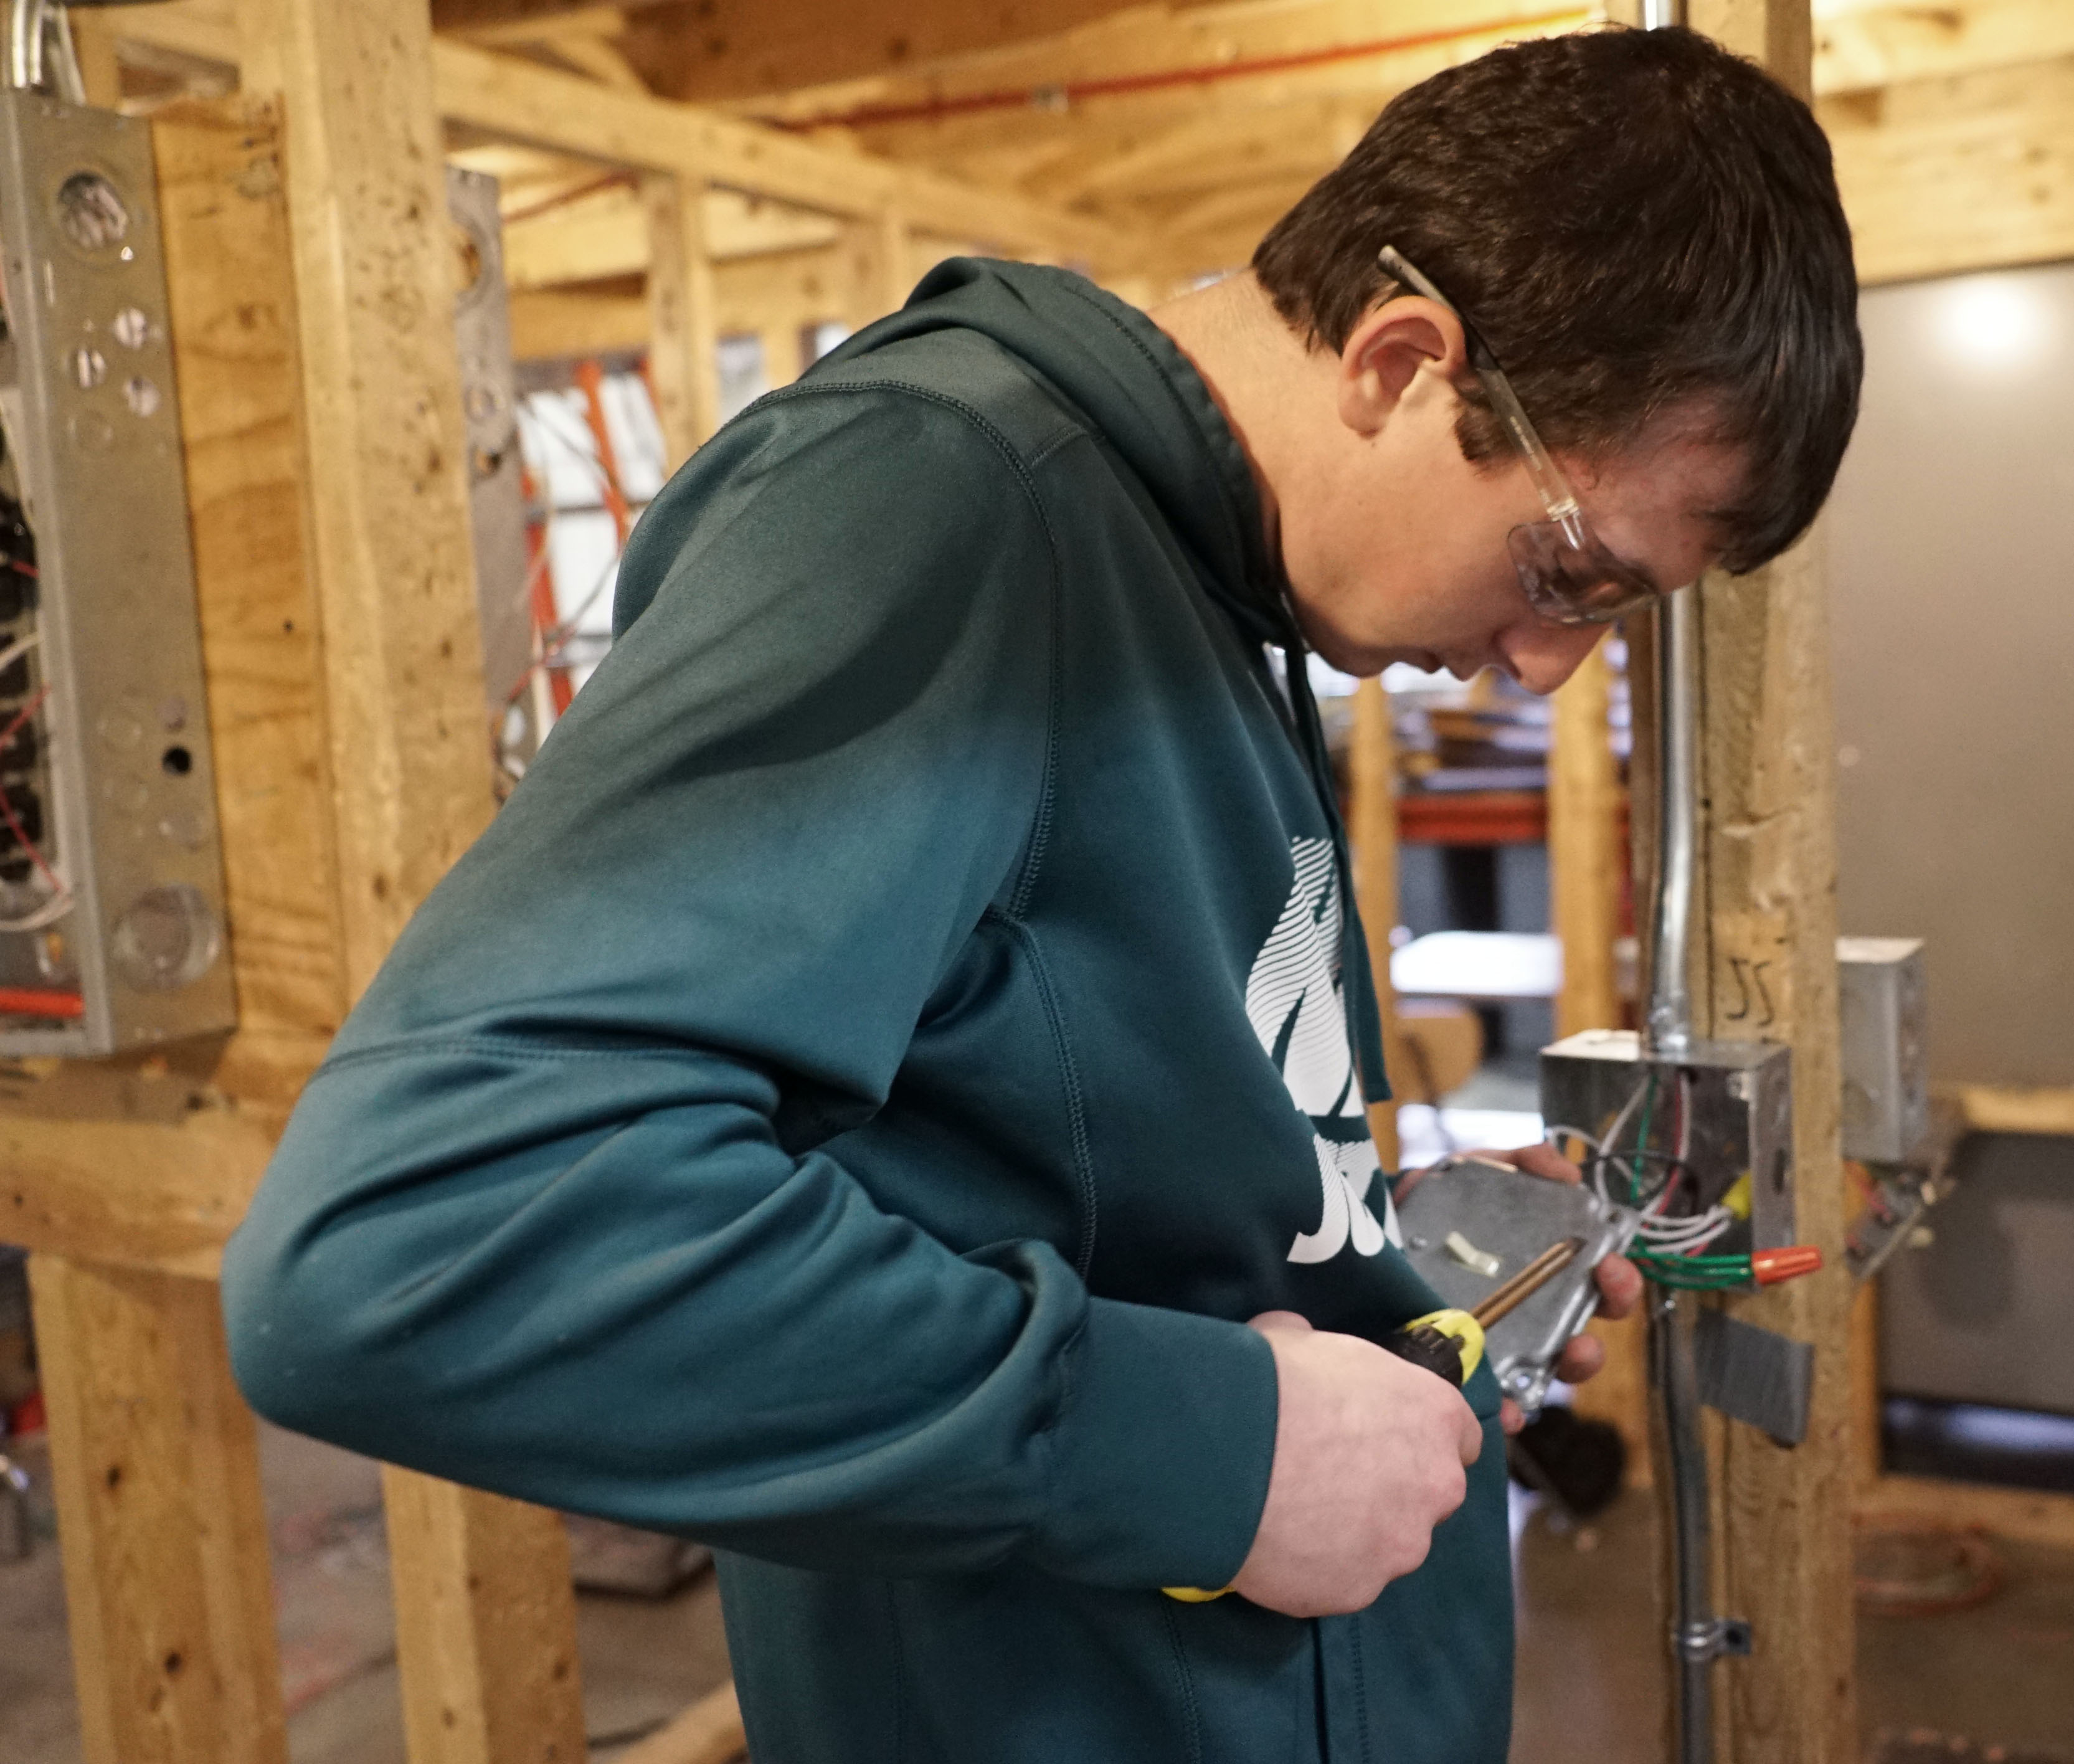 student working on electrical outlet